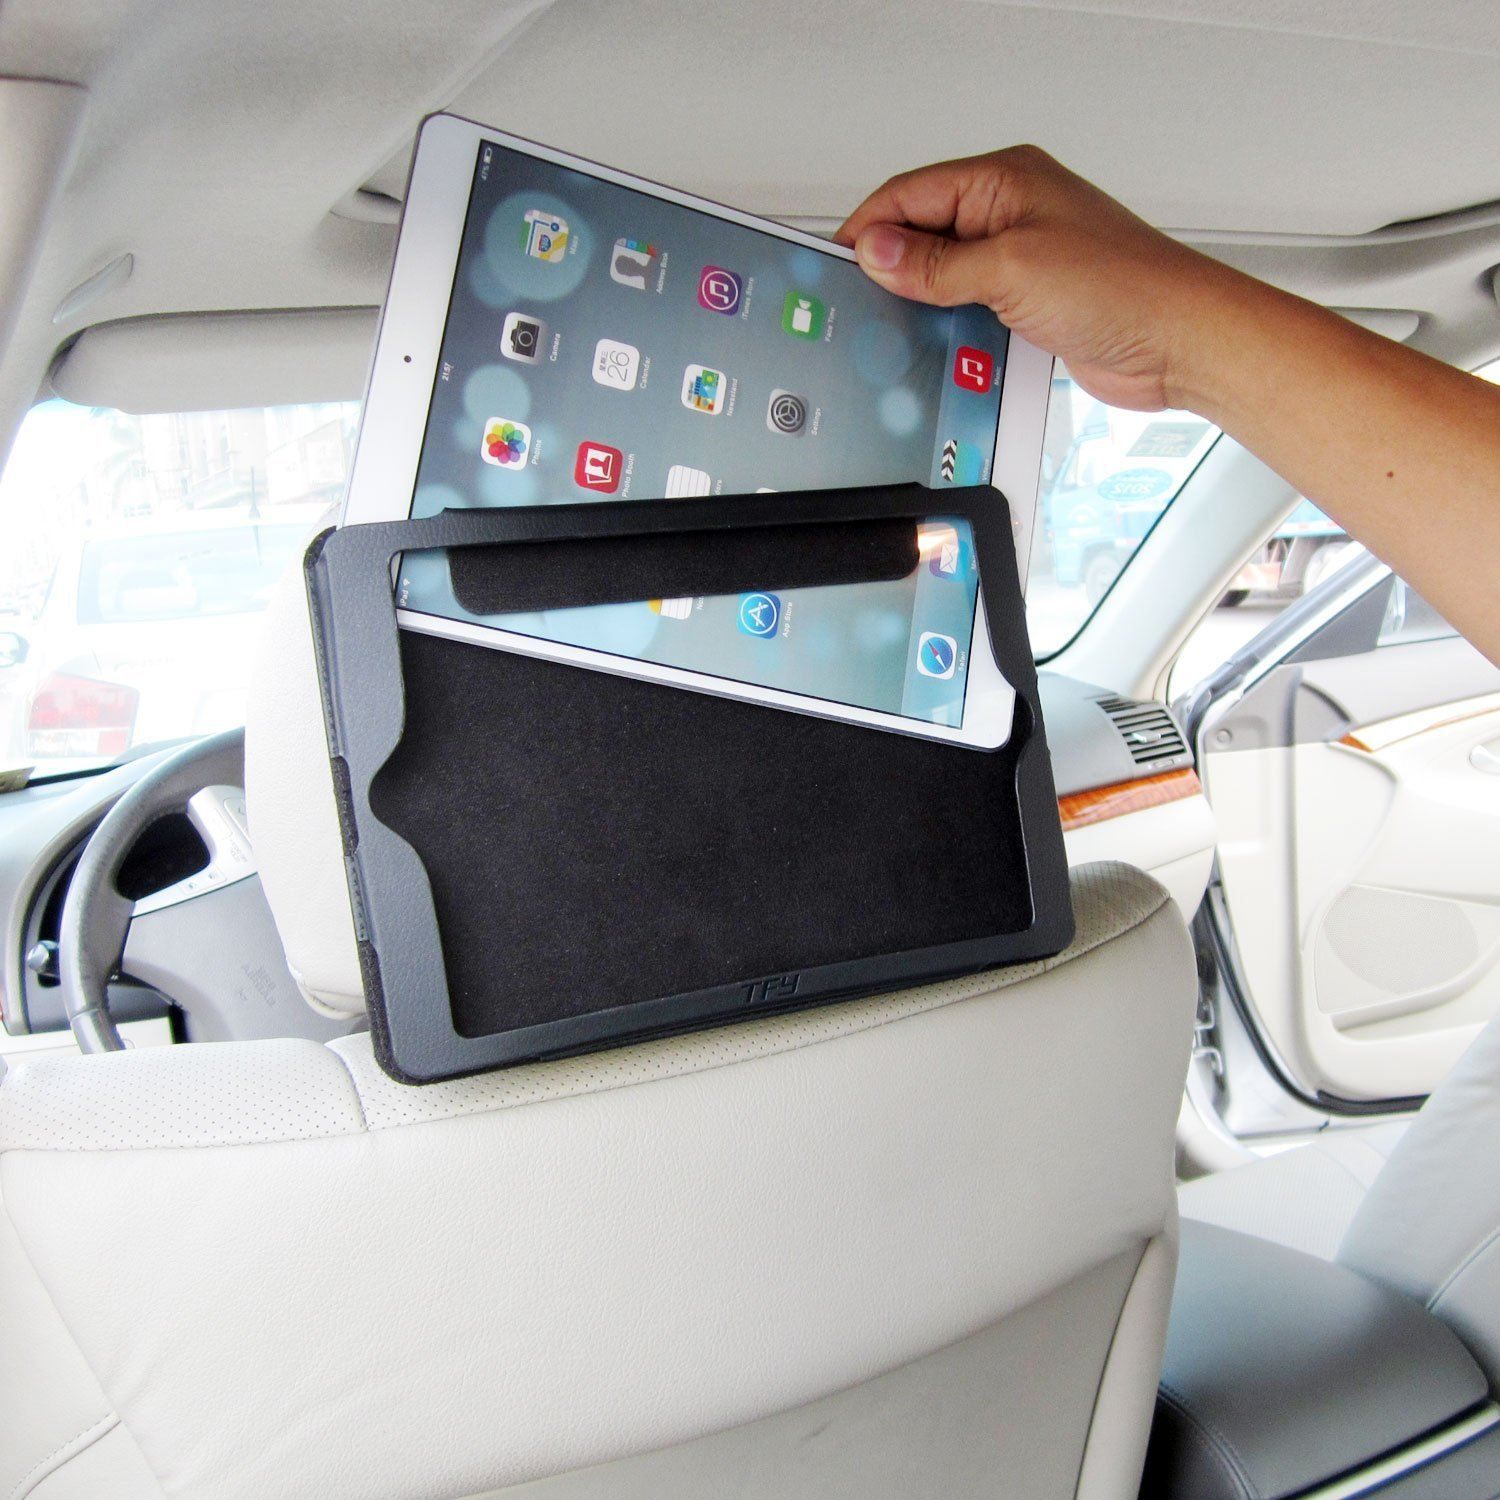 iPad Air (iPad 5 5th Generation) Car Headrest Mount Holder